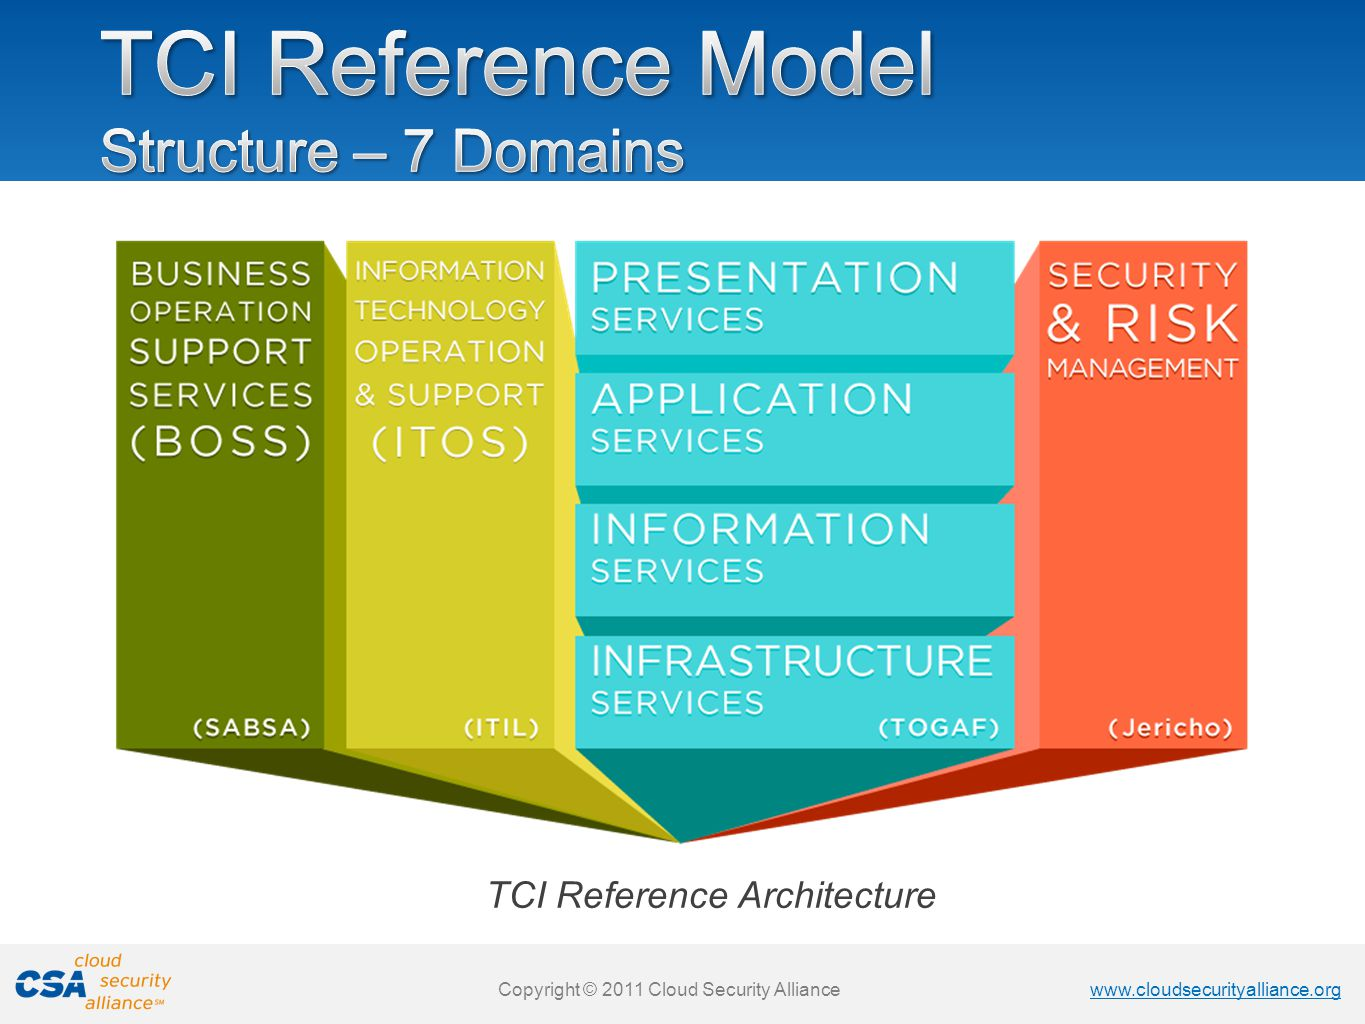 TCI Reference Model Structure – 7 Domains